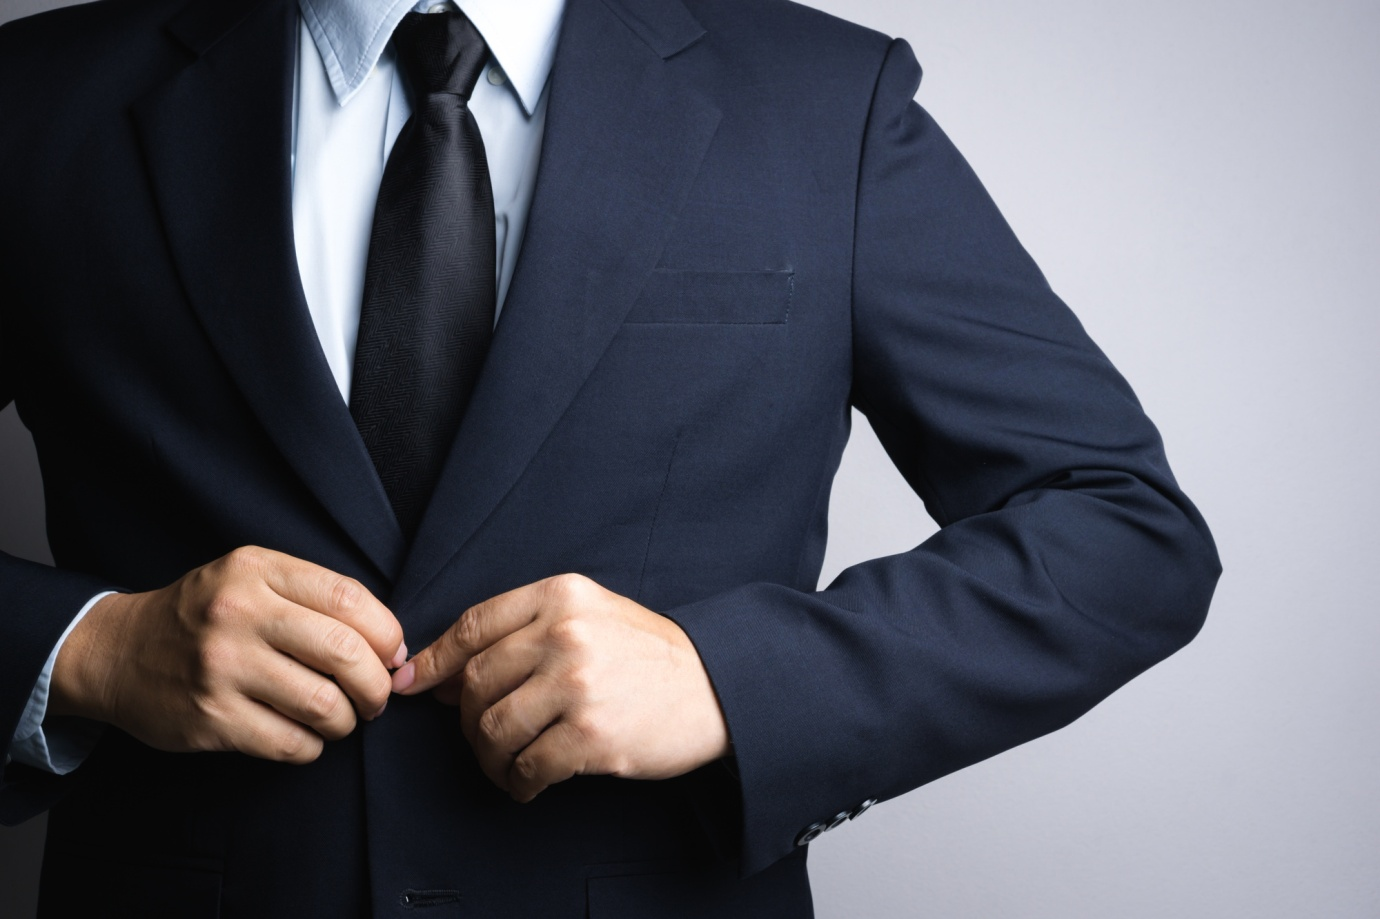 5 Reasons You Should Work With an Executive Search Consultant